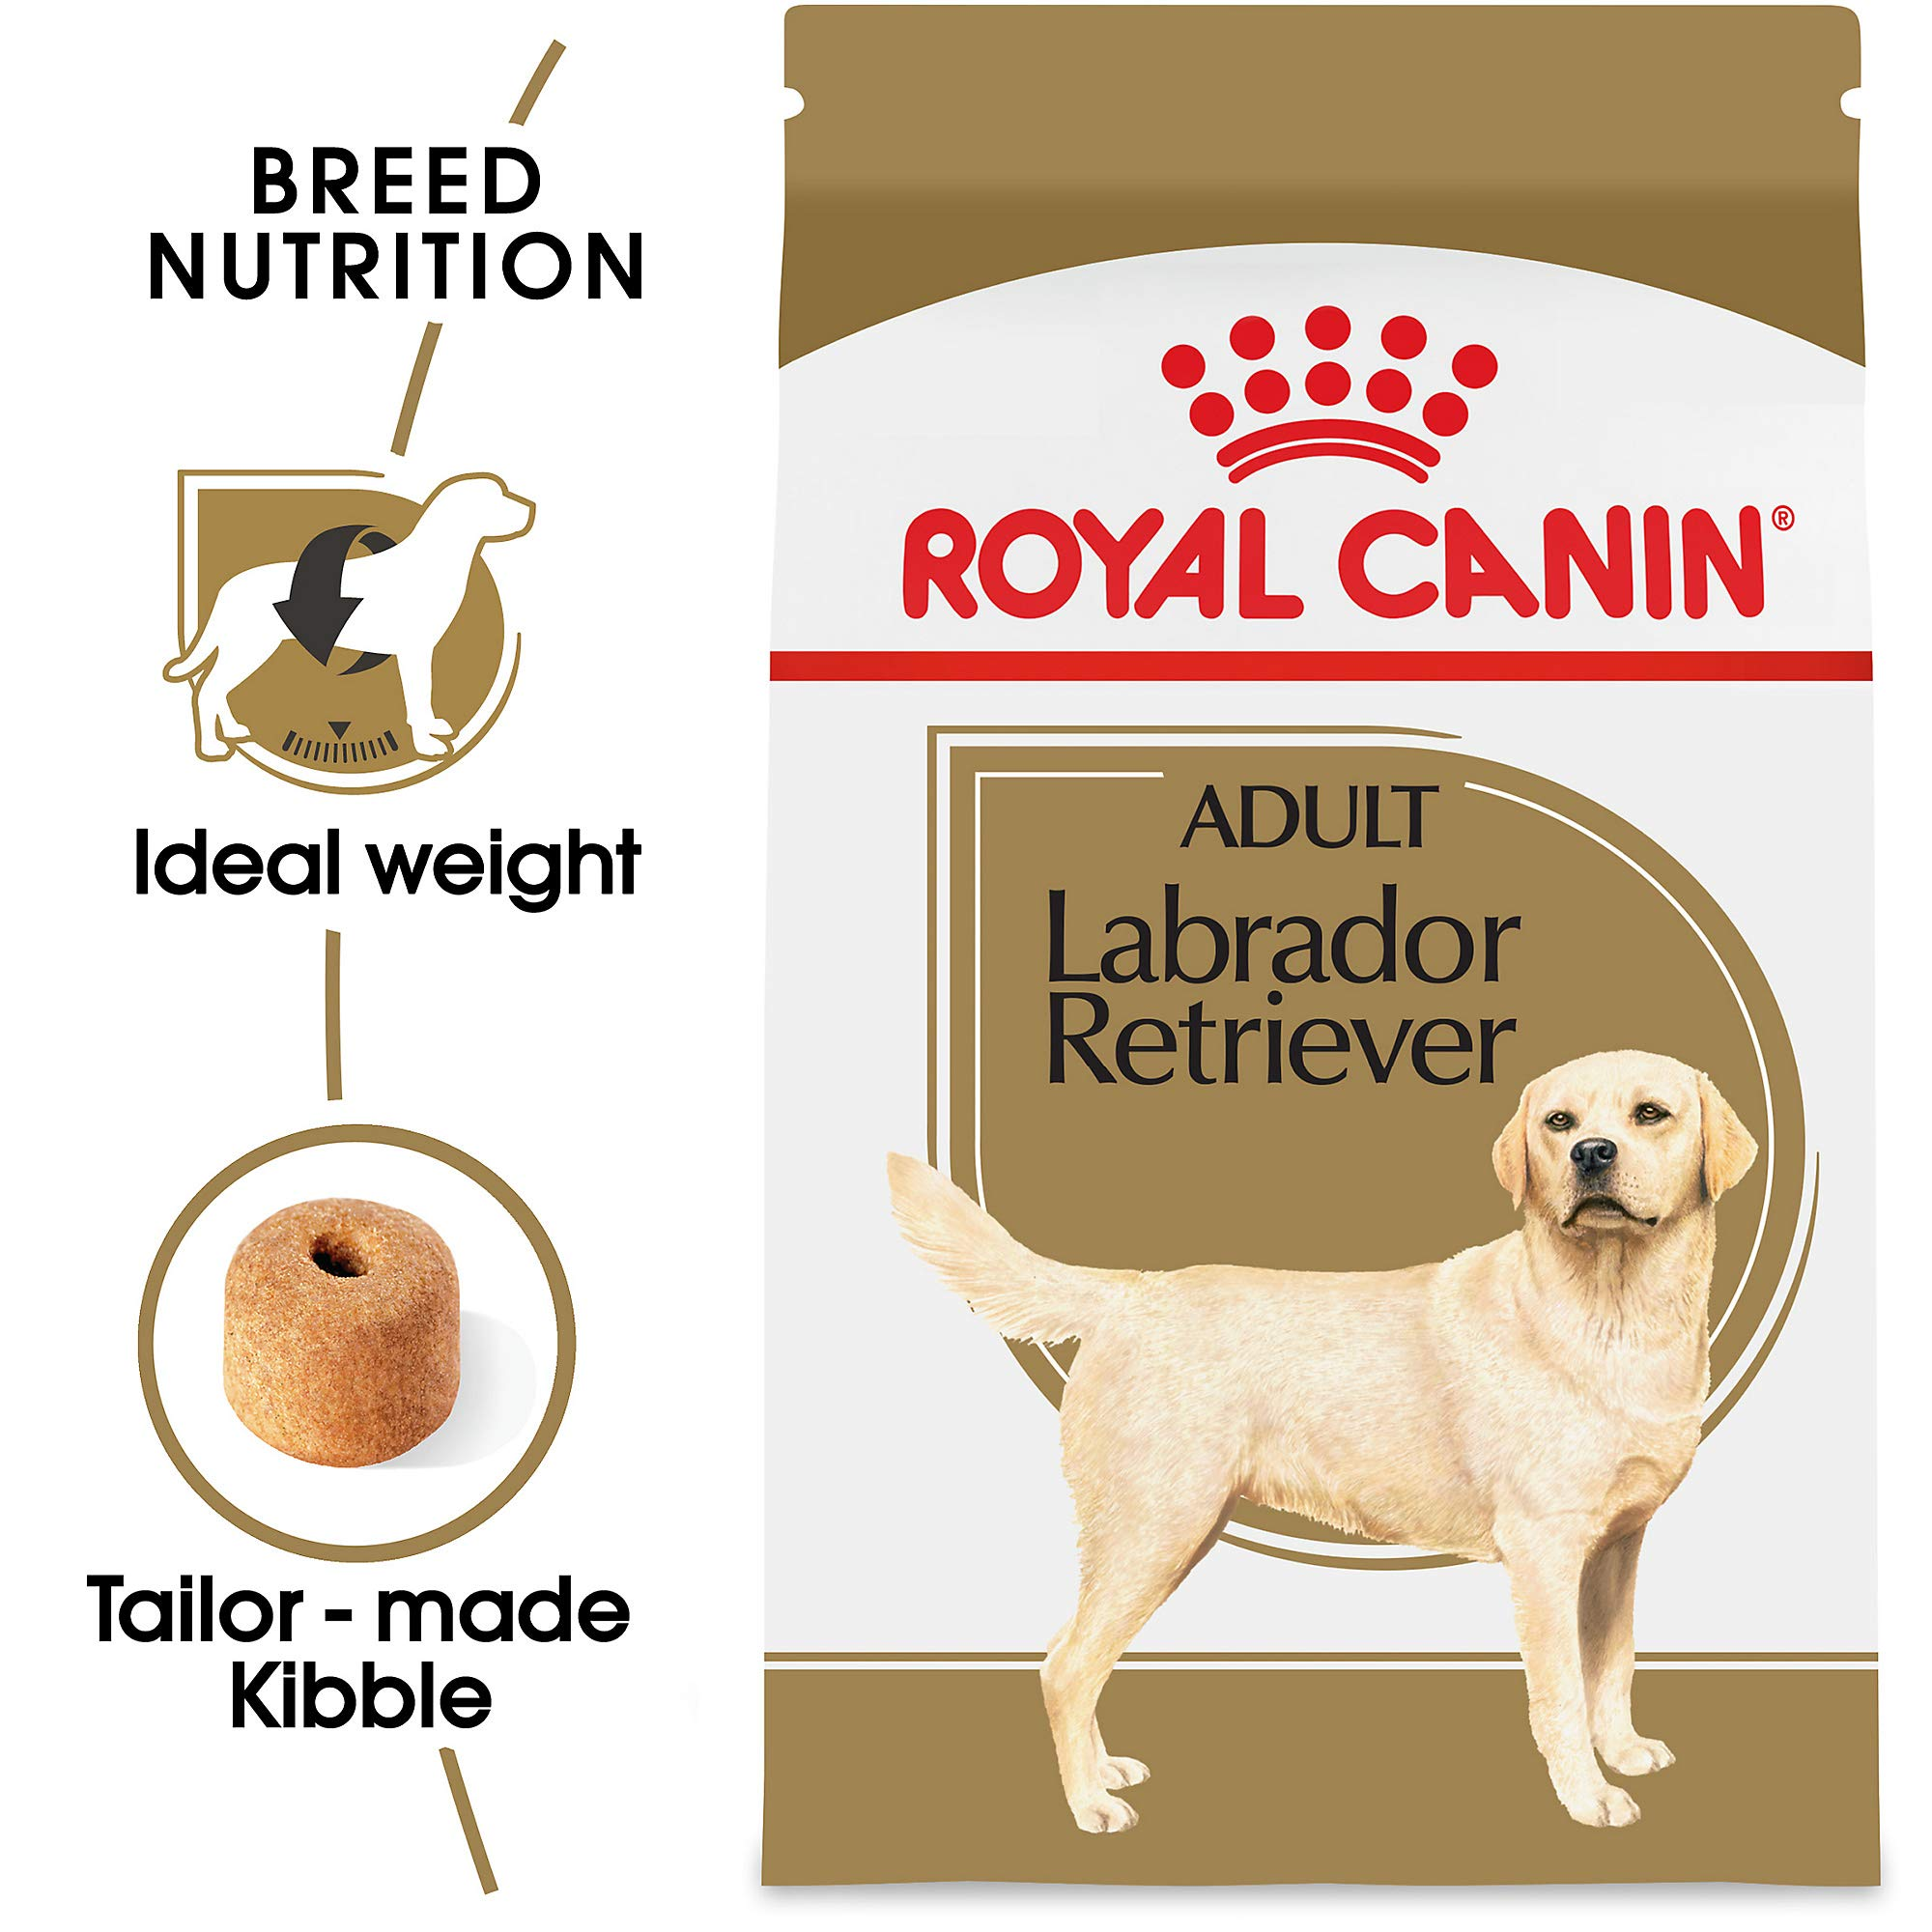 Royal Canin Labrador Retriever Adult Breed Specific Dry Dog Food, 30 lb. bag by Royal Canin